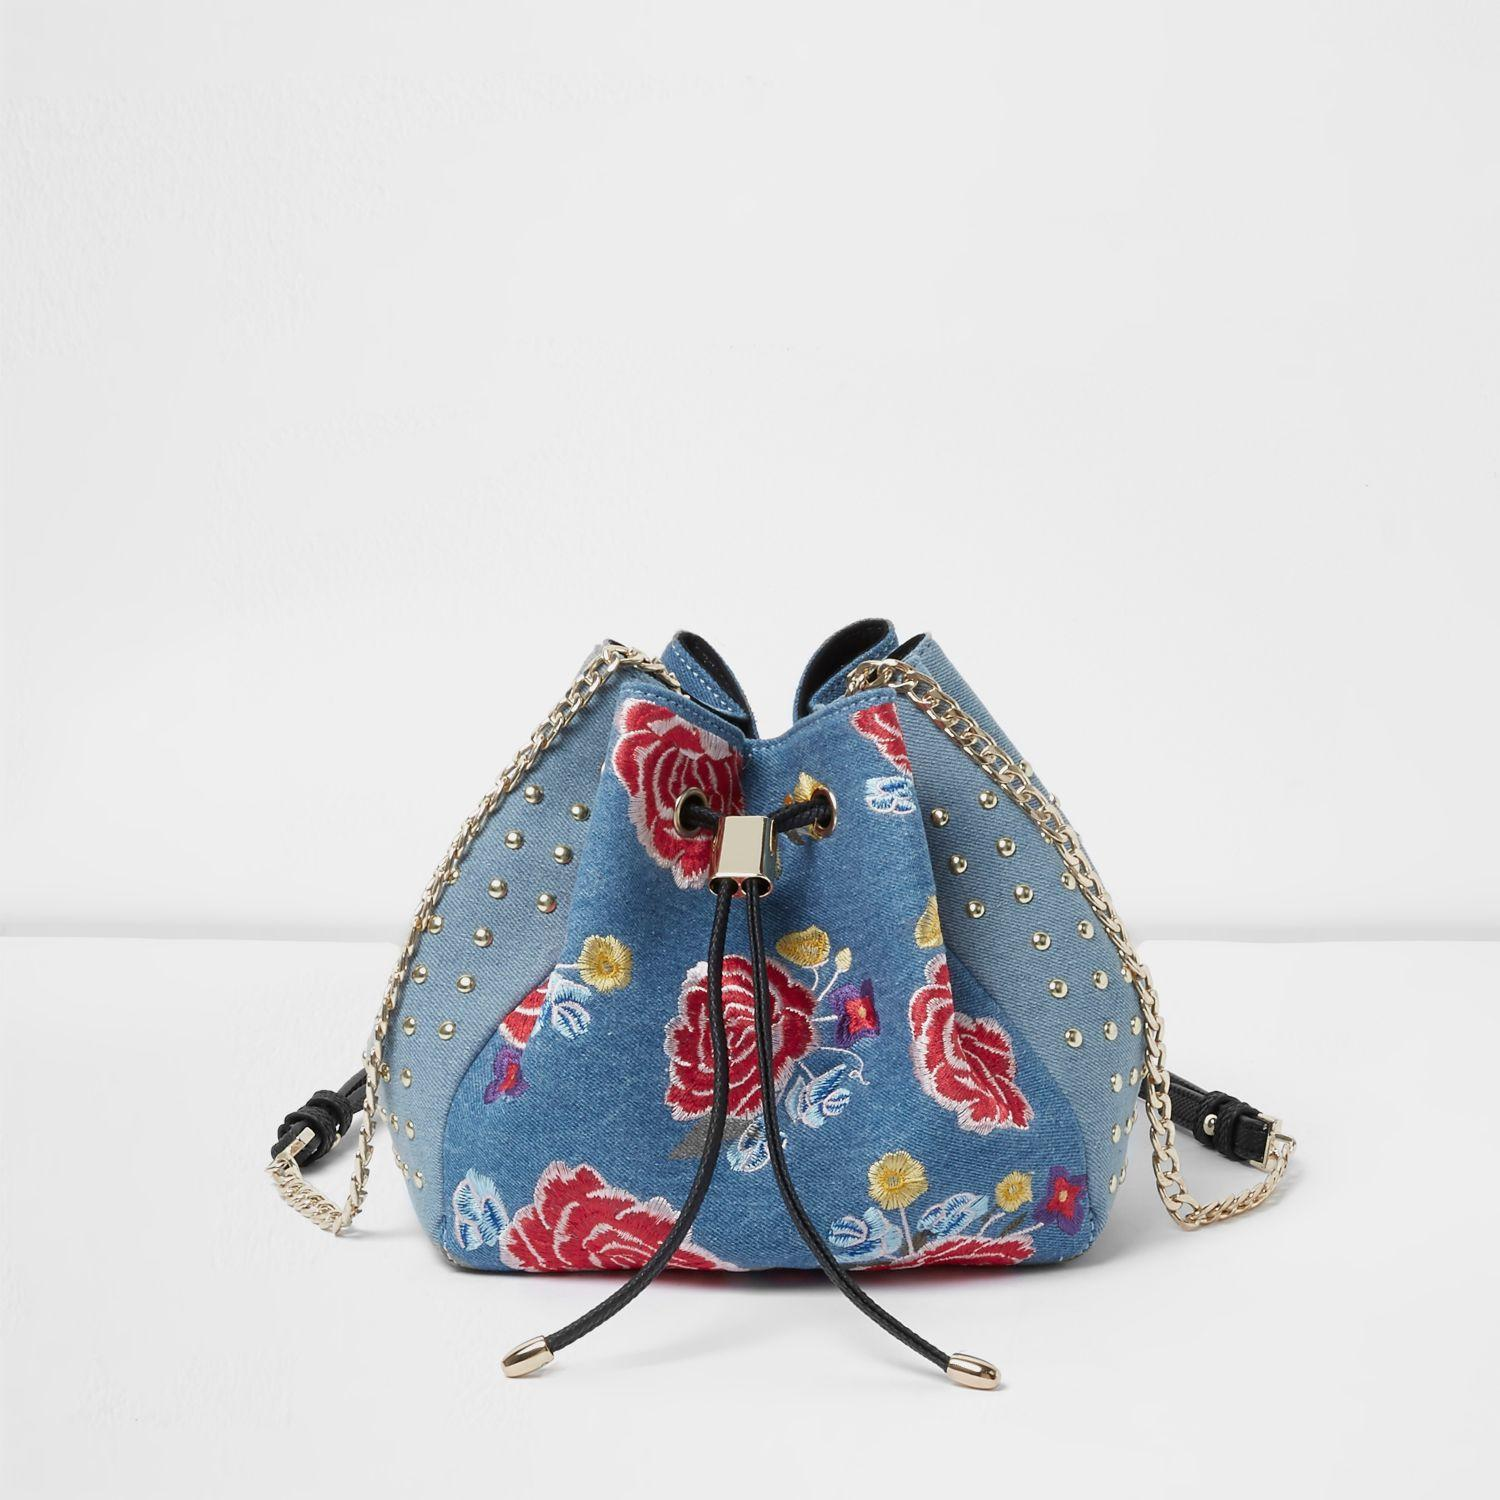 River Island Blue Denim Floral Embroidered Duffle Bag In Blue | Lyst